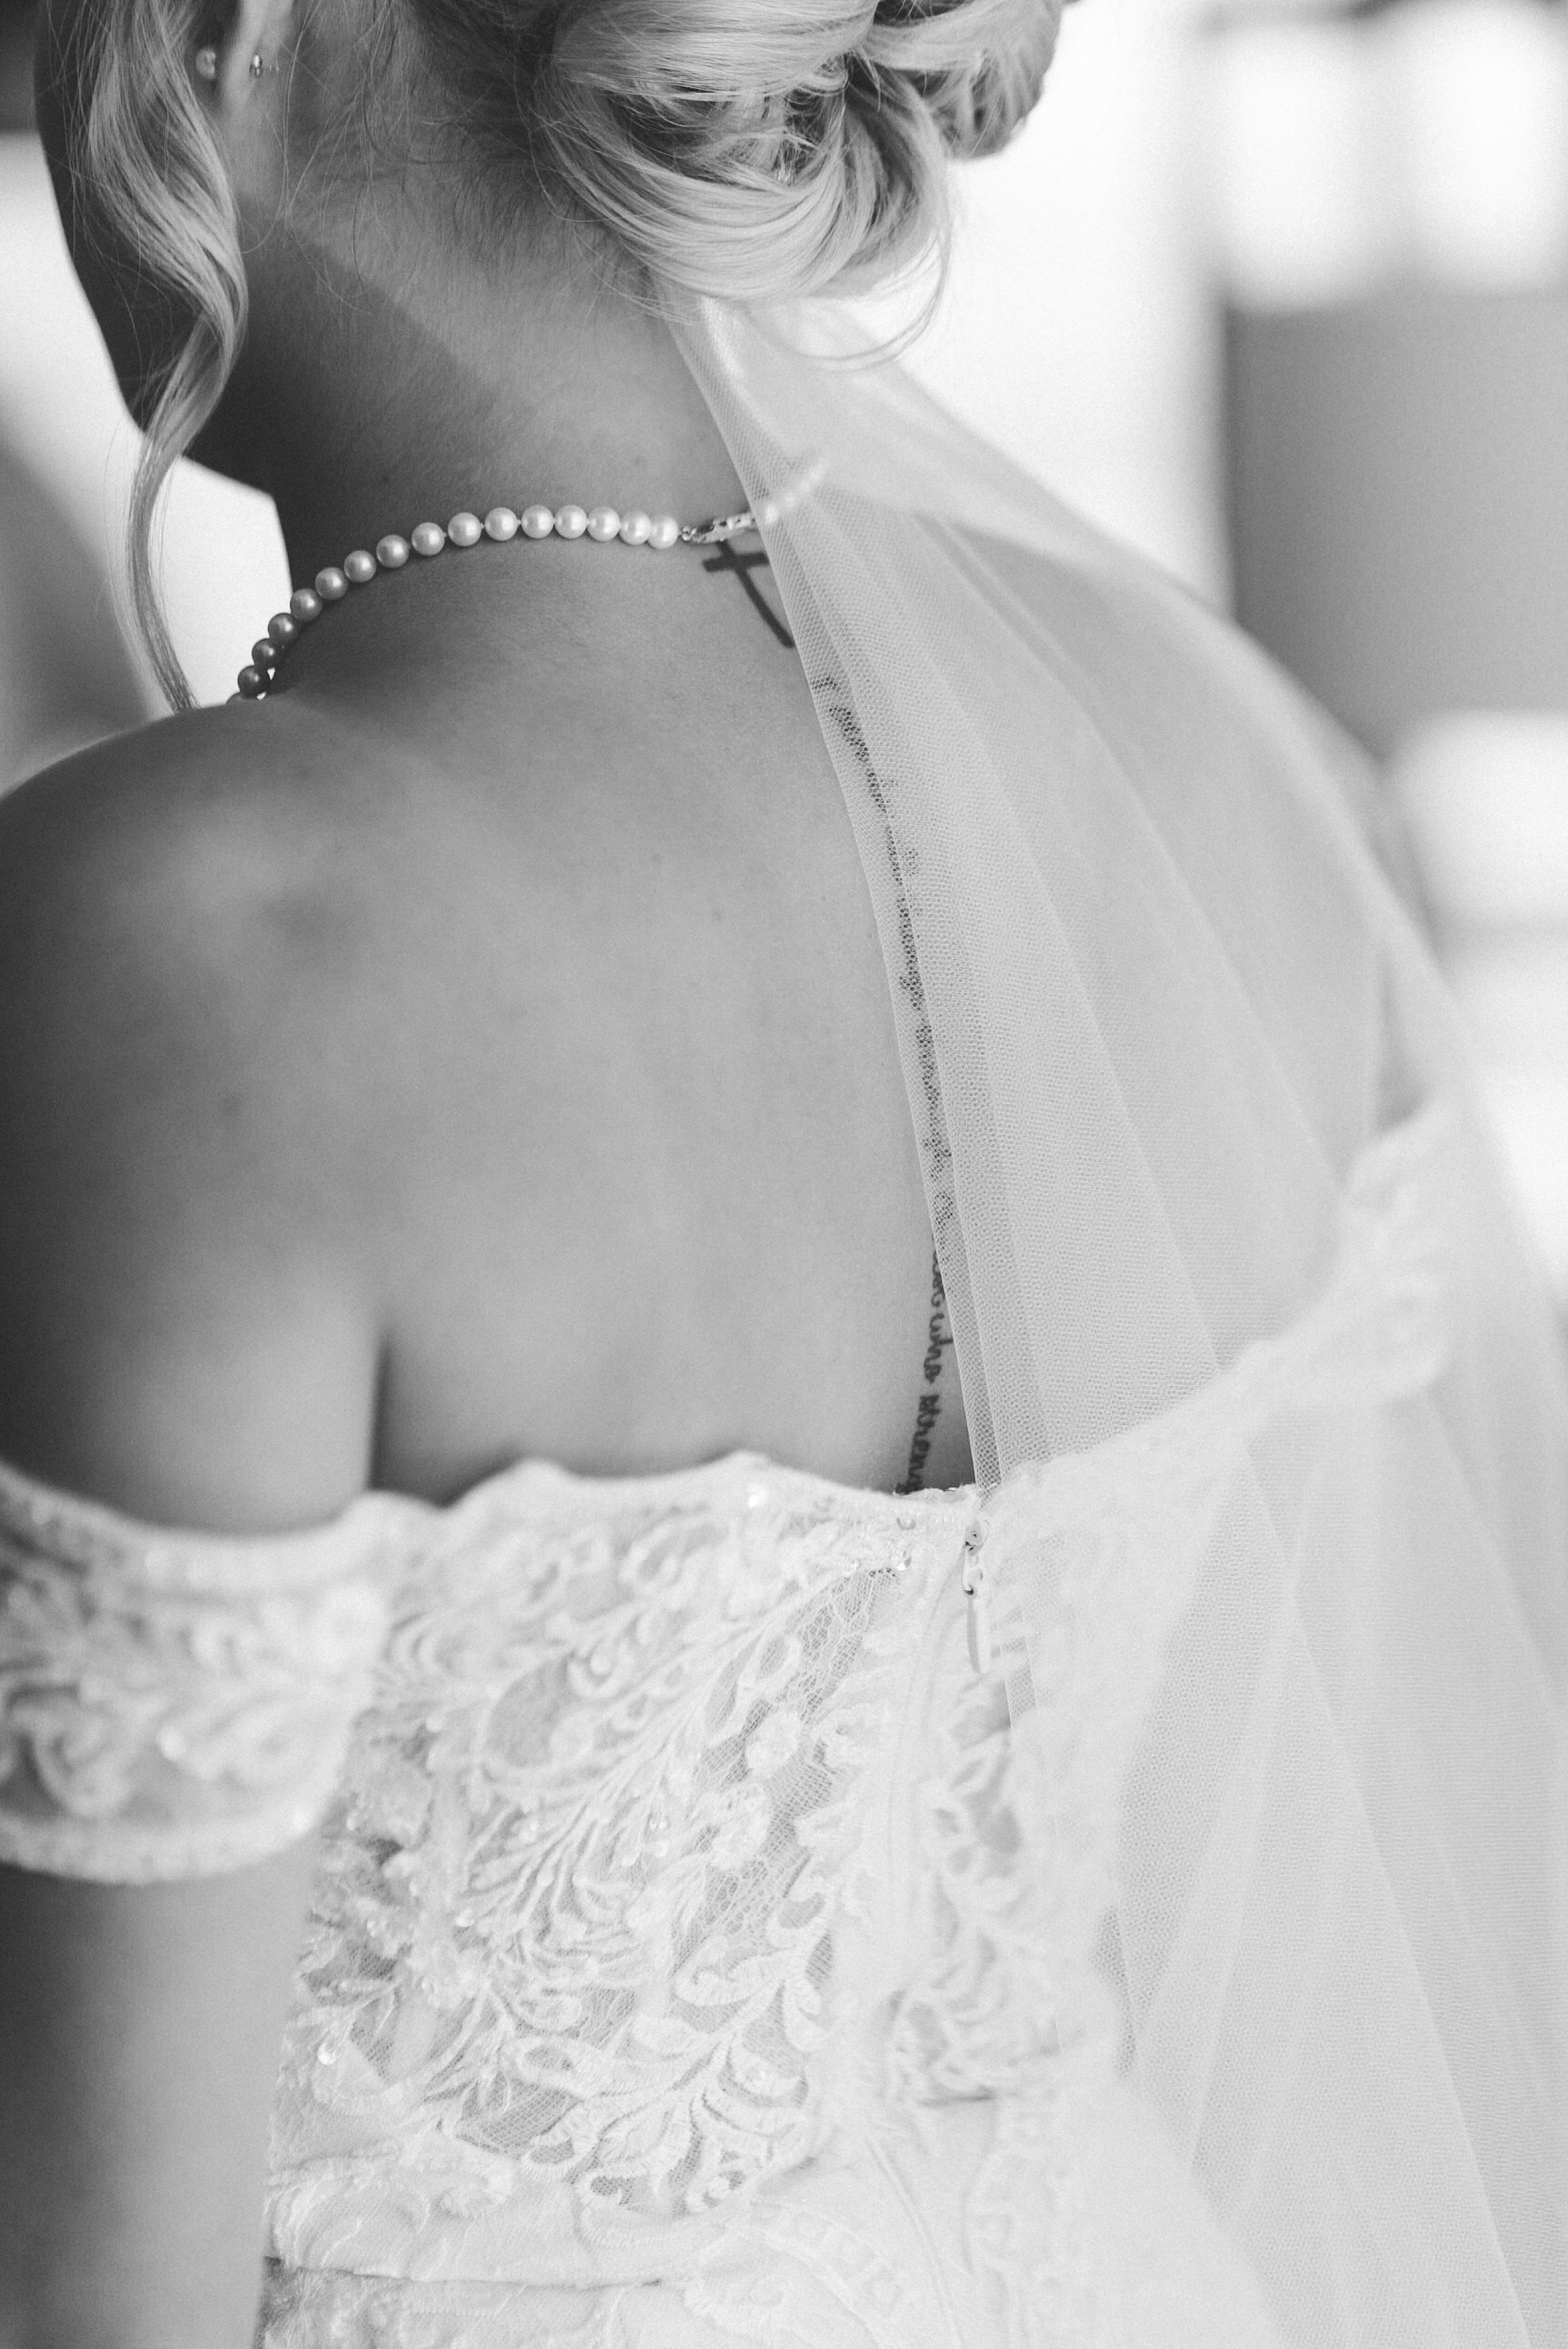 Bride with spine tatoo. Aria Sky Suite Wedding. Las Vegas strip